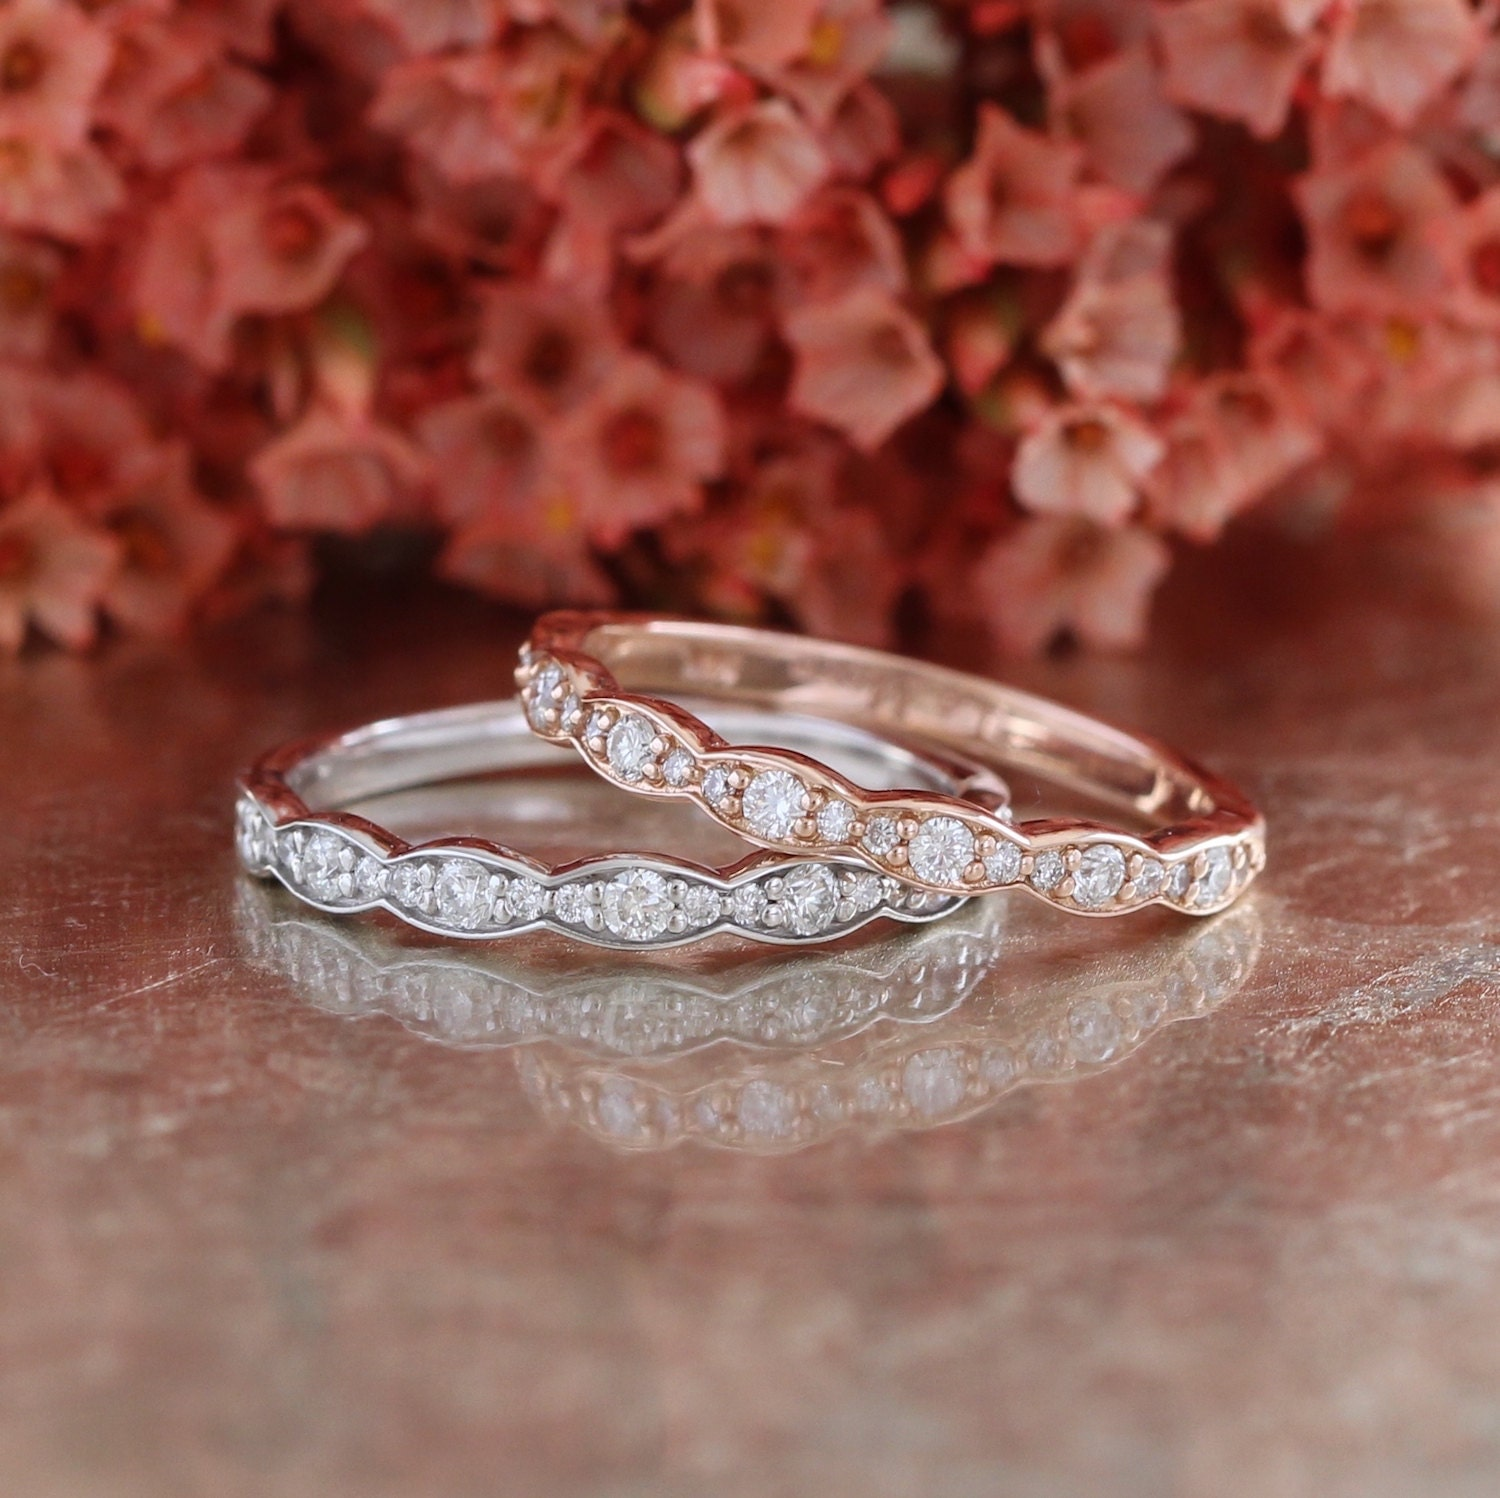 by wedding halo design diamond in more ring scalloped oval bands la products rose gold aquamarine set band bridal